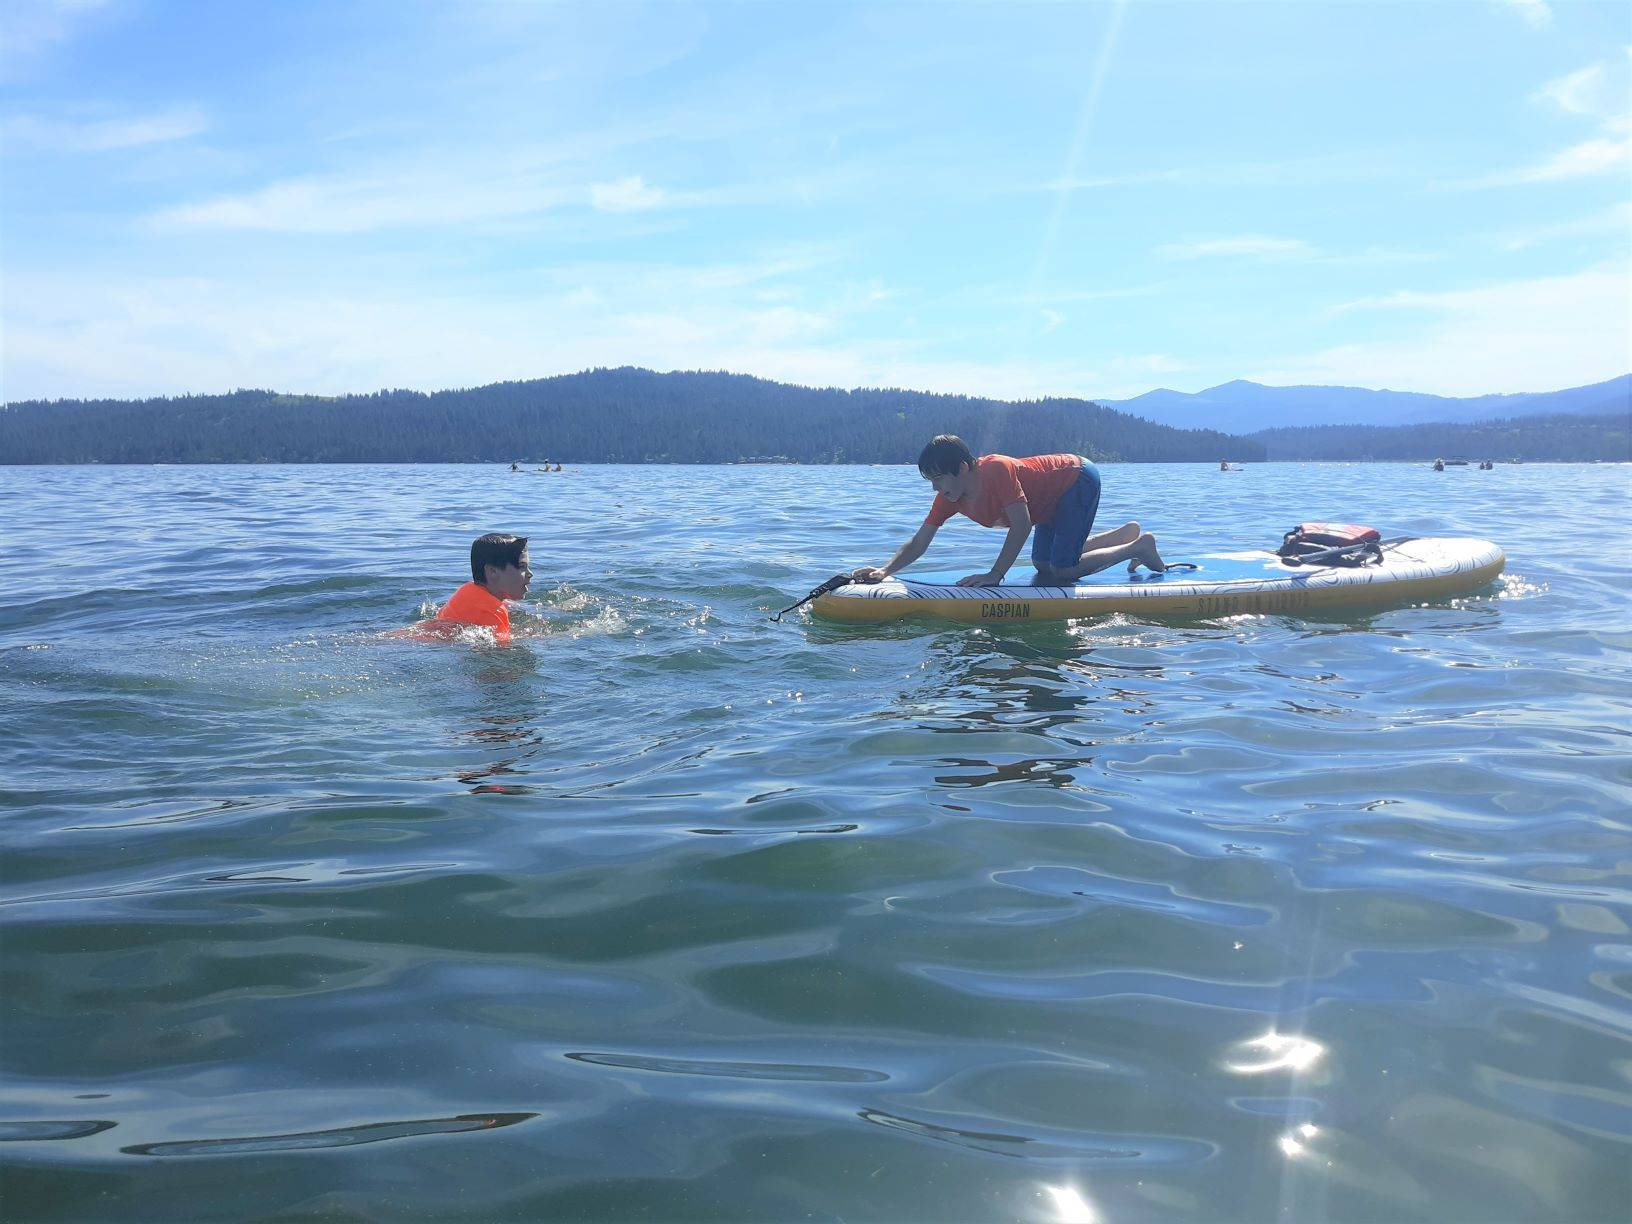 Two boys swimming in Lake Coeur d'Alene, one boy kneeling on a paddleboard. Sun shining on the water, and mountainous hills in the far background.